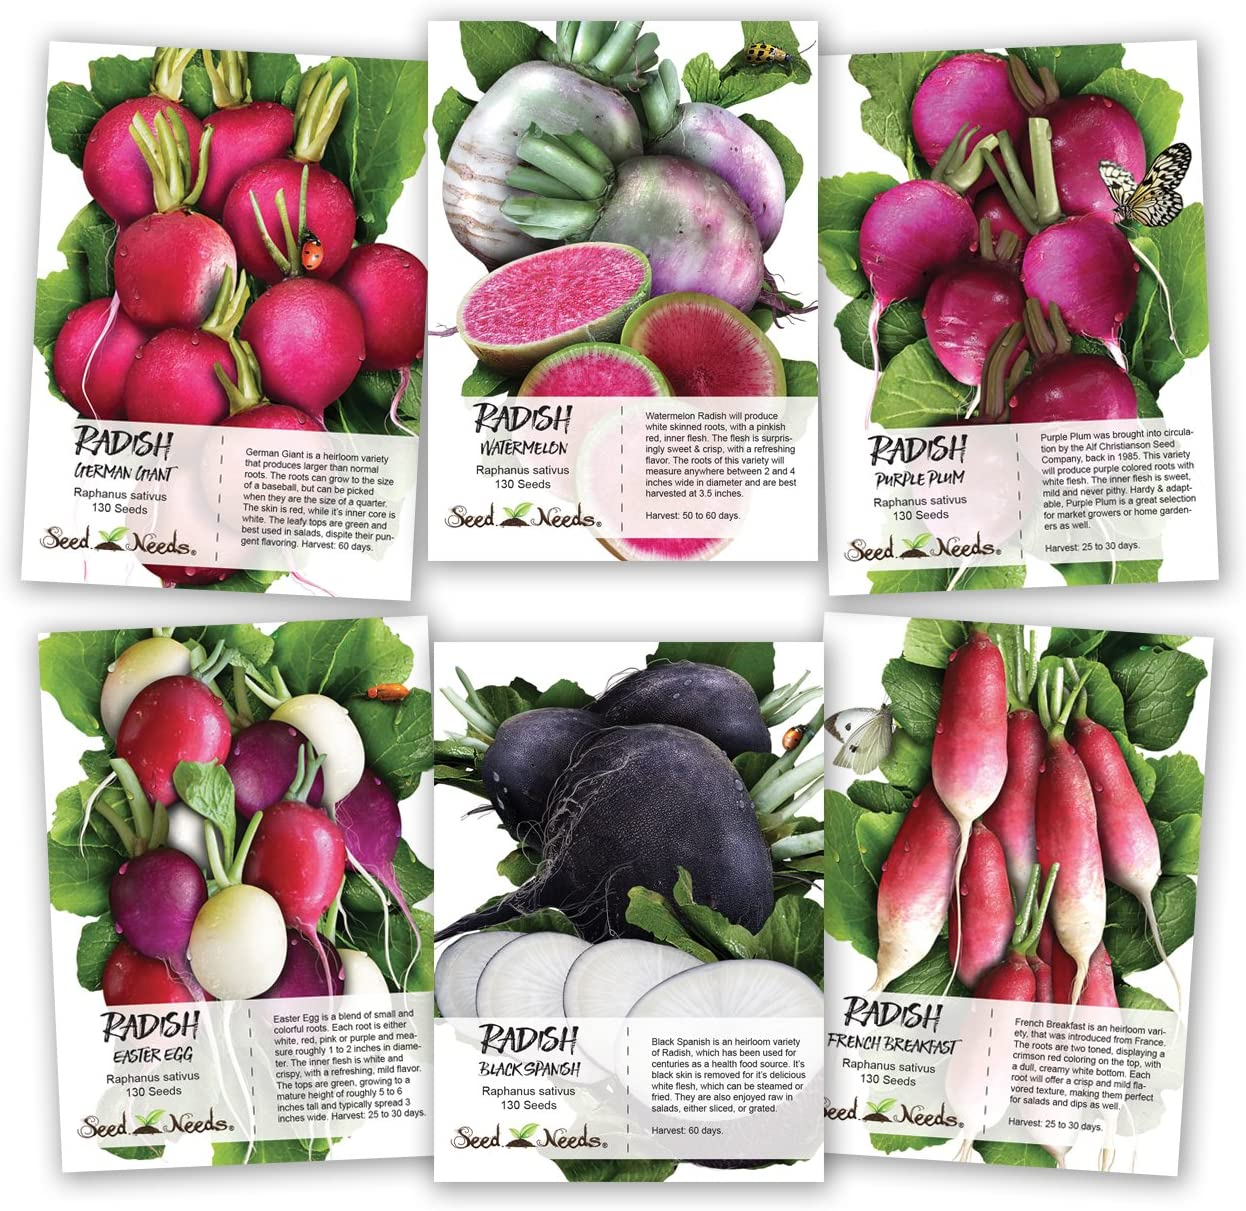 Seed Needs, Multicolor Radish Seed Packet Collection (6 Individual Packets) Non-GMO Seeds